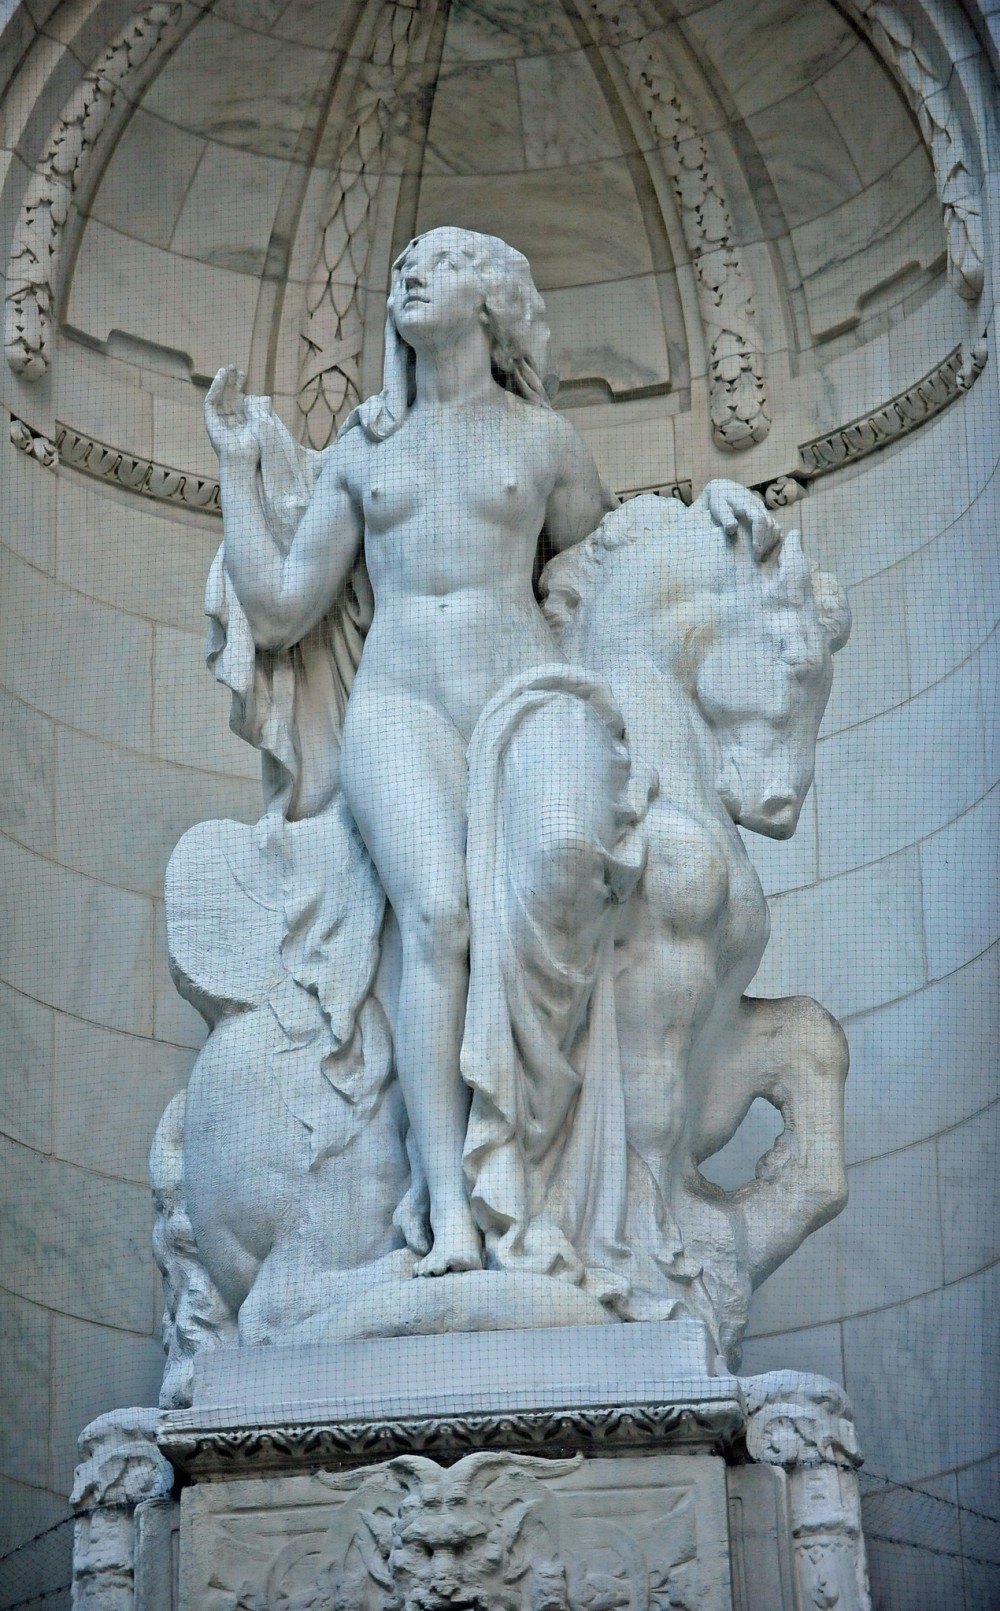 Beauty by sculptor Frederick MacMonnies at the entrance of New York Public Library